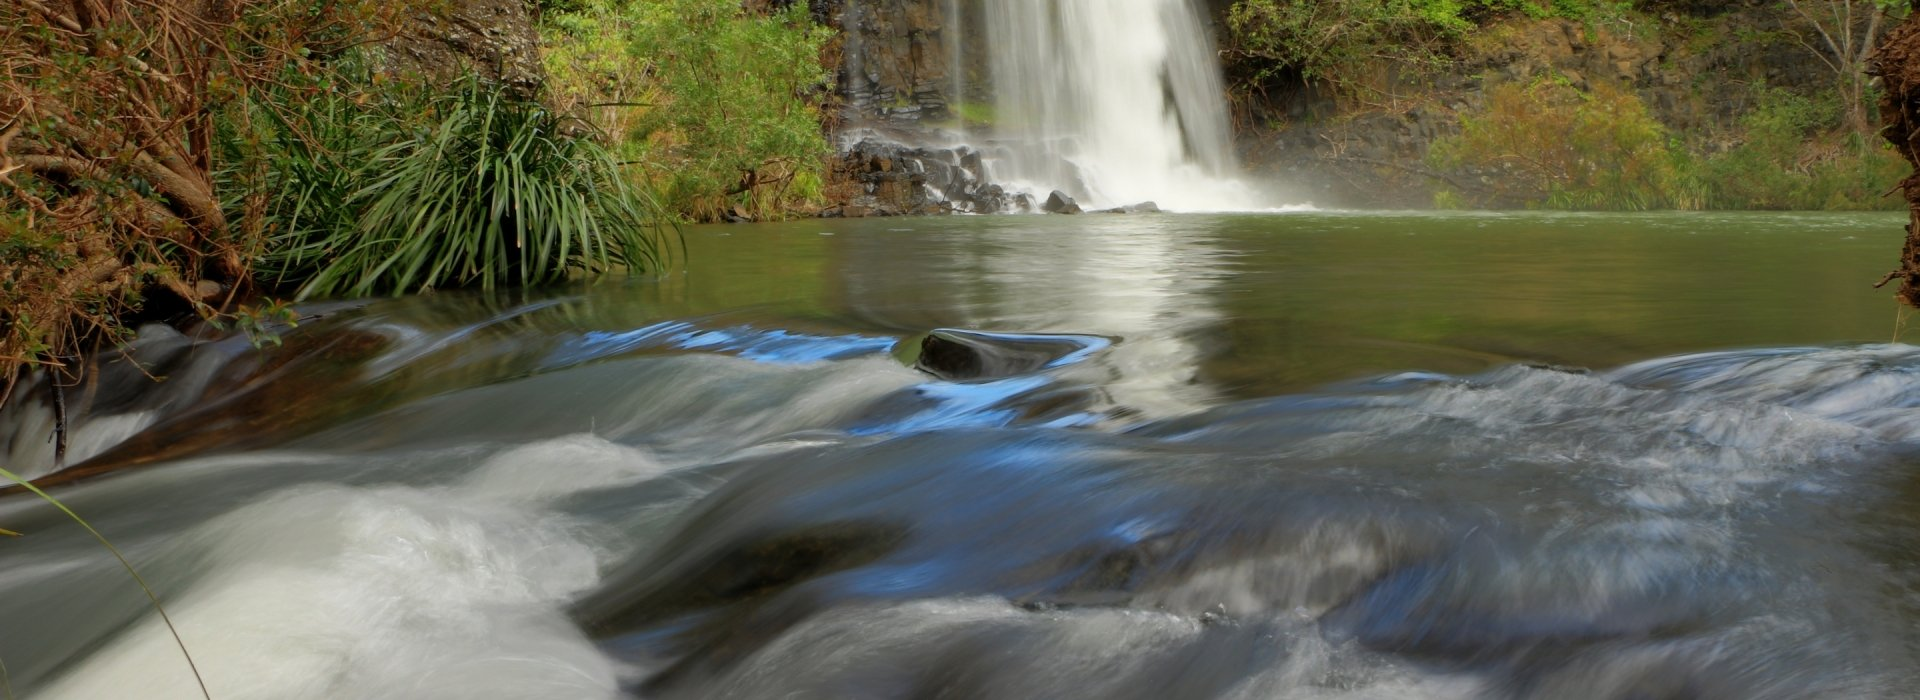 Right-hand Section of Big Millstream Falls - Millstream Falls National Park - Tablelands Regional Council